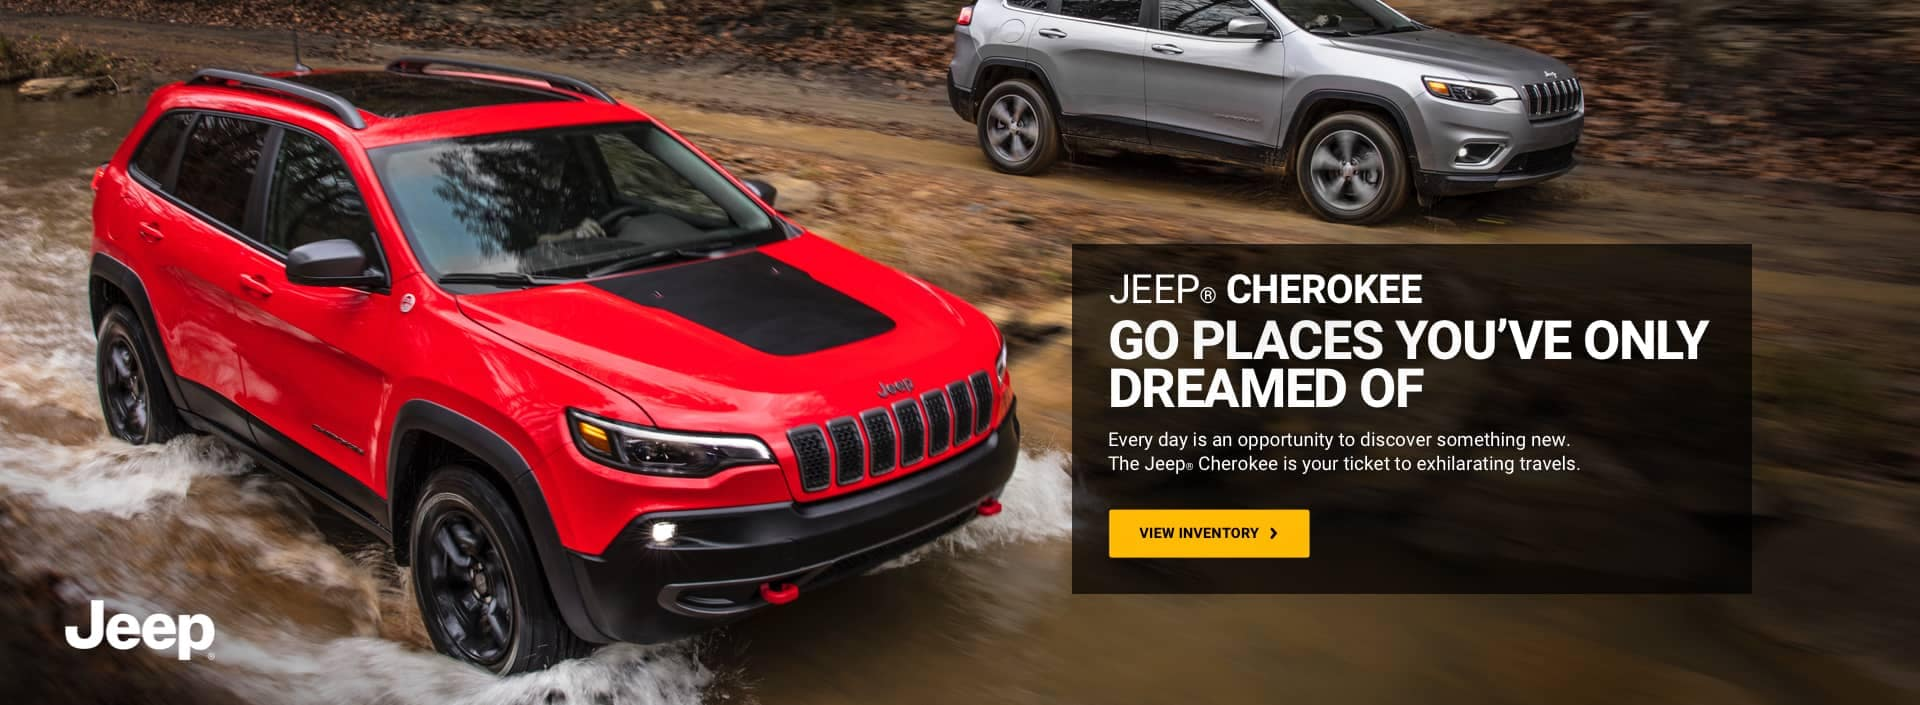 a Red and a gray Jeep Cherokee off roading